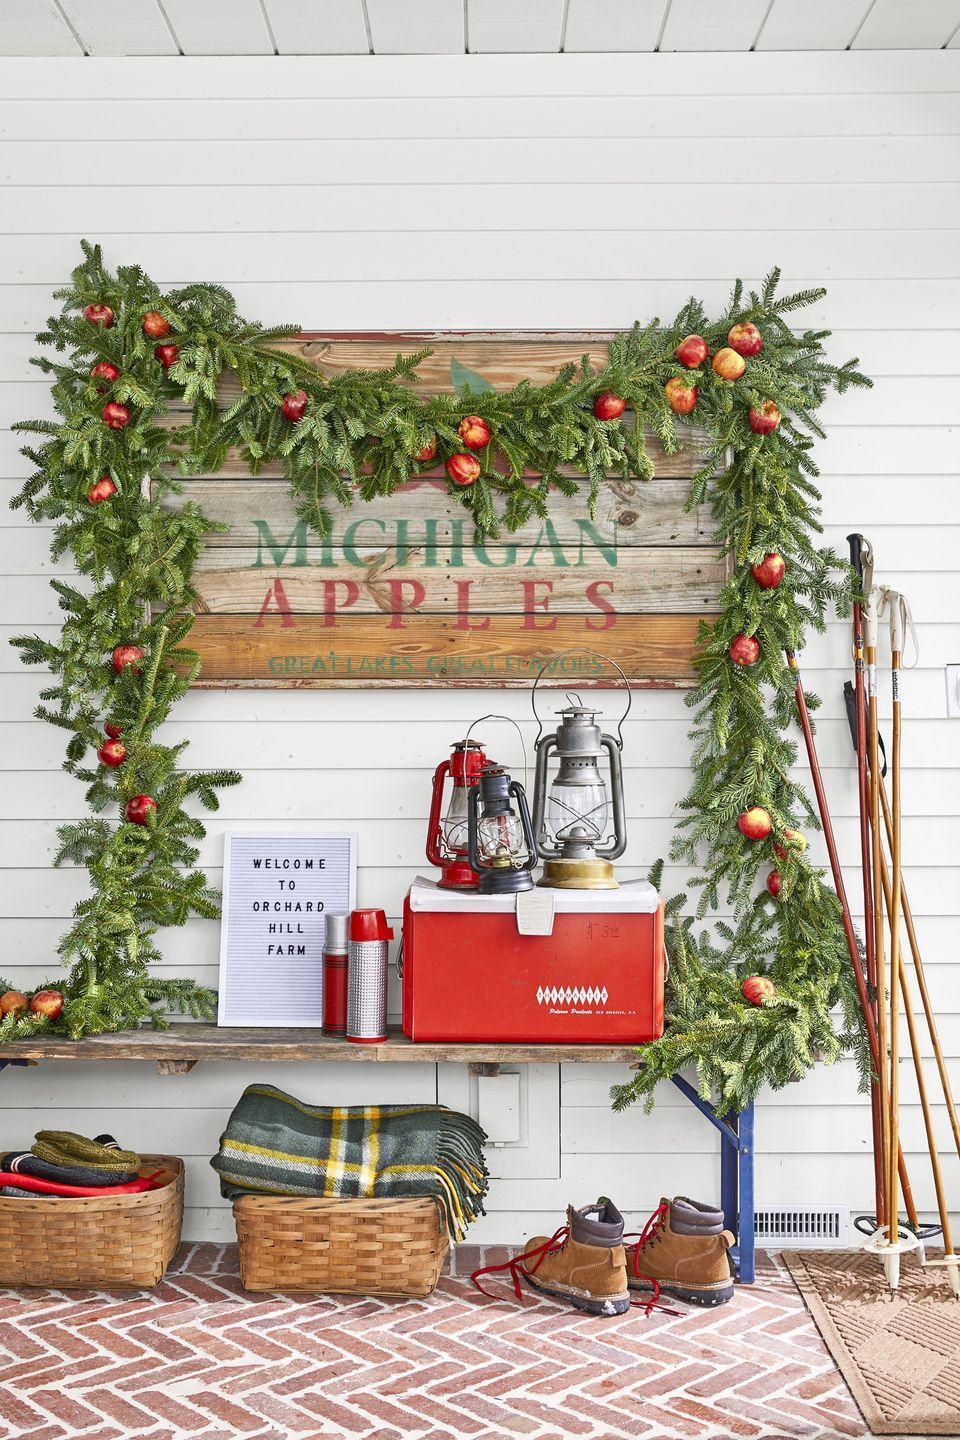 """<p>To make this Fraser fir creation, use a skewer to puncture a hole through an apple, close to the center, then string wire through the fruit and secure wire to the garland.</p><p><a class=""""link rapid-noclick-resp"""" href=""""https://www.amazon.com/Vickerman-Unlit-Camden-Fir-Garland/dp/B0029OL3H4?tag=syn-yahoo-20&ascsubtag=%5Bartid%7C10050.g.1247%5Bsrc%7Cyahoo-us"""" rel=""""nofollow noopener"""" target=""""_blank"""" data-ylk=""""slk:SHOP GARLAND"""">SHOP GARLAND</a></p>"""